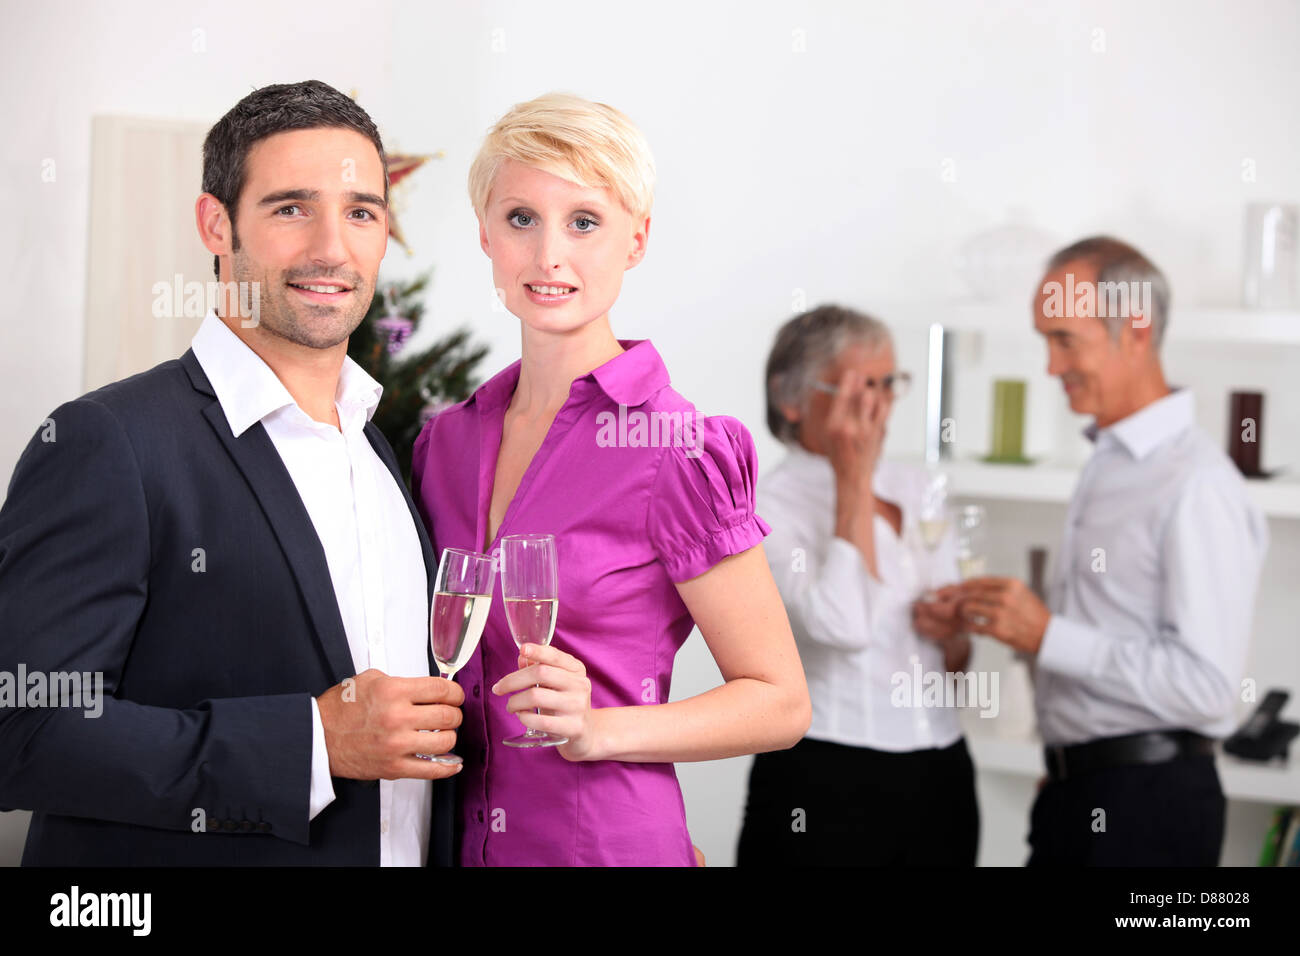 Special Invited Guests Stock Photos & Special Invited Guests Stock ...